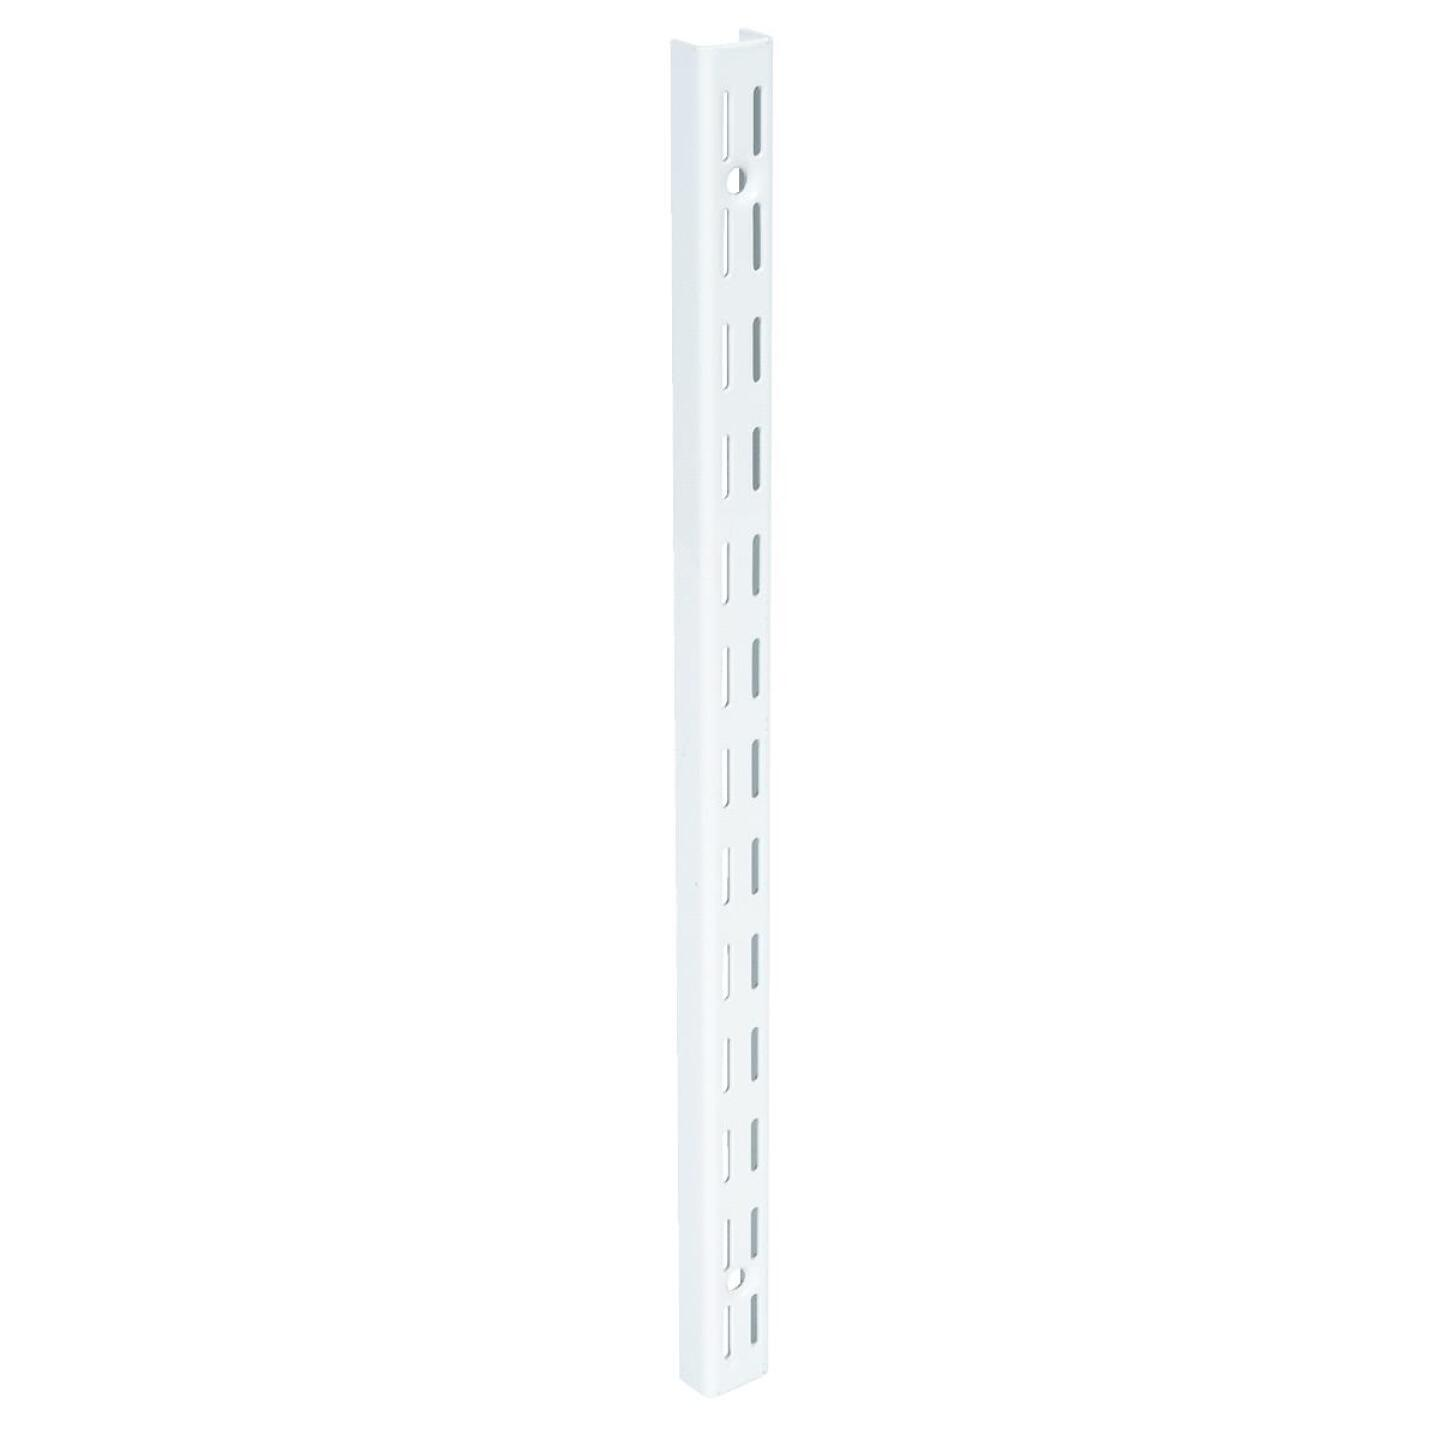 FreedomRail 16-3/4 In. White Standard Wall-Mounted Upright Image 1